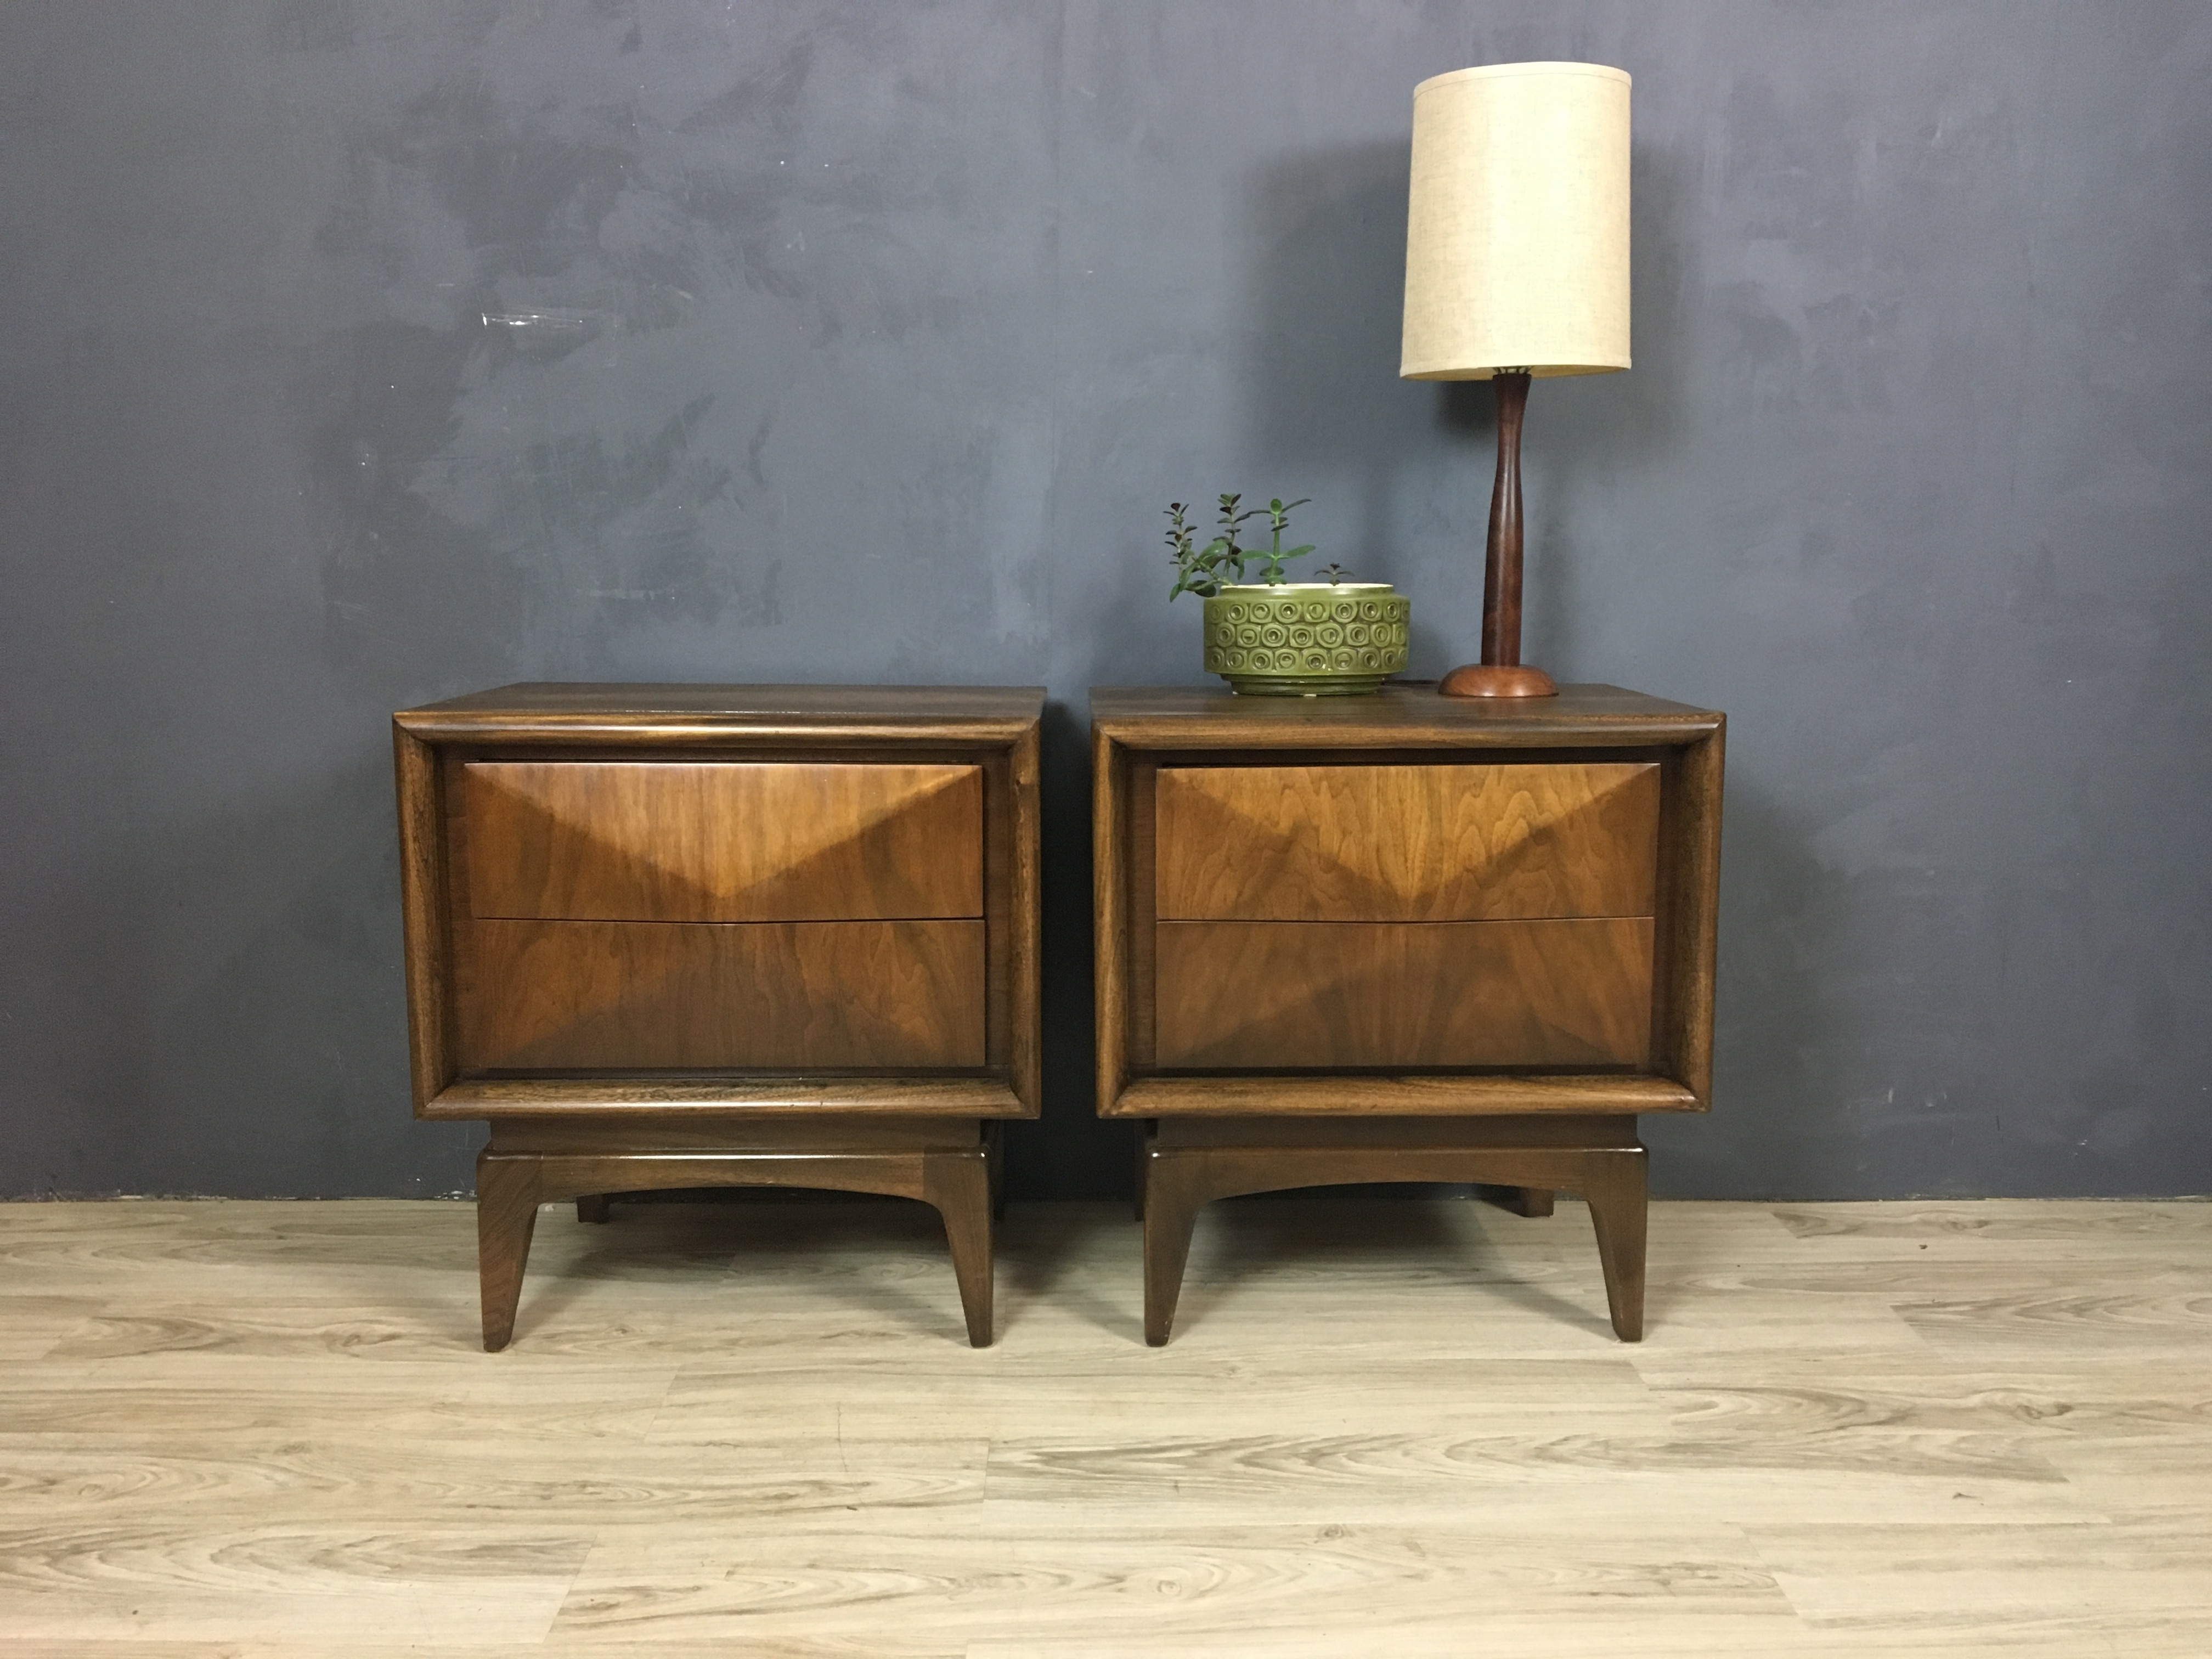 Pair of Danish Modern Teak Table Lamps